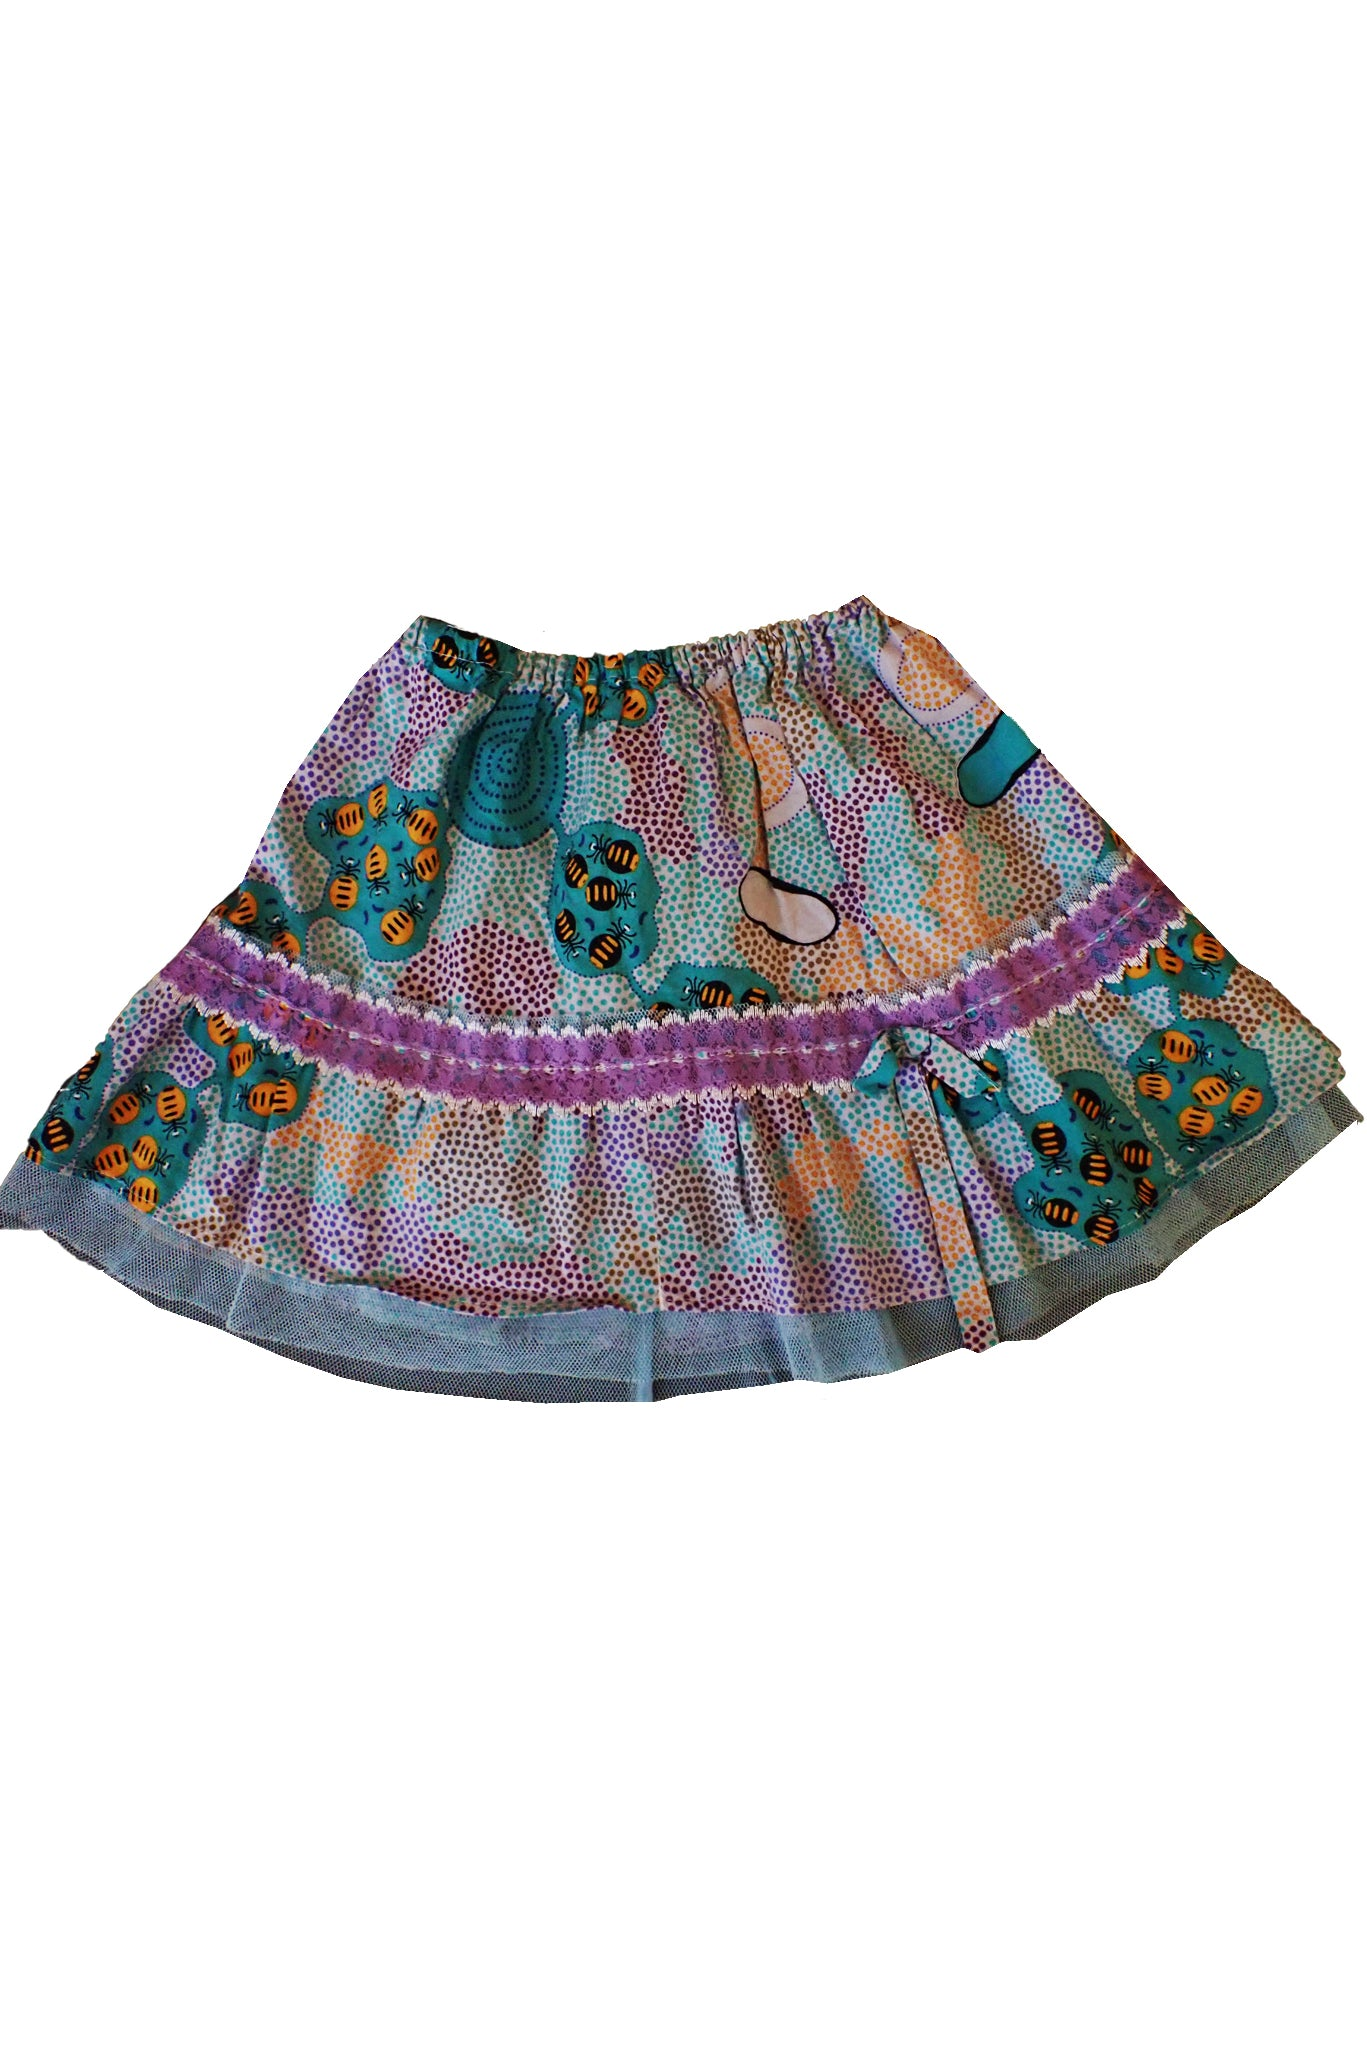 Toddler skirt handmade with Audrey Martin Honey Ant fabric